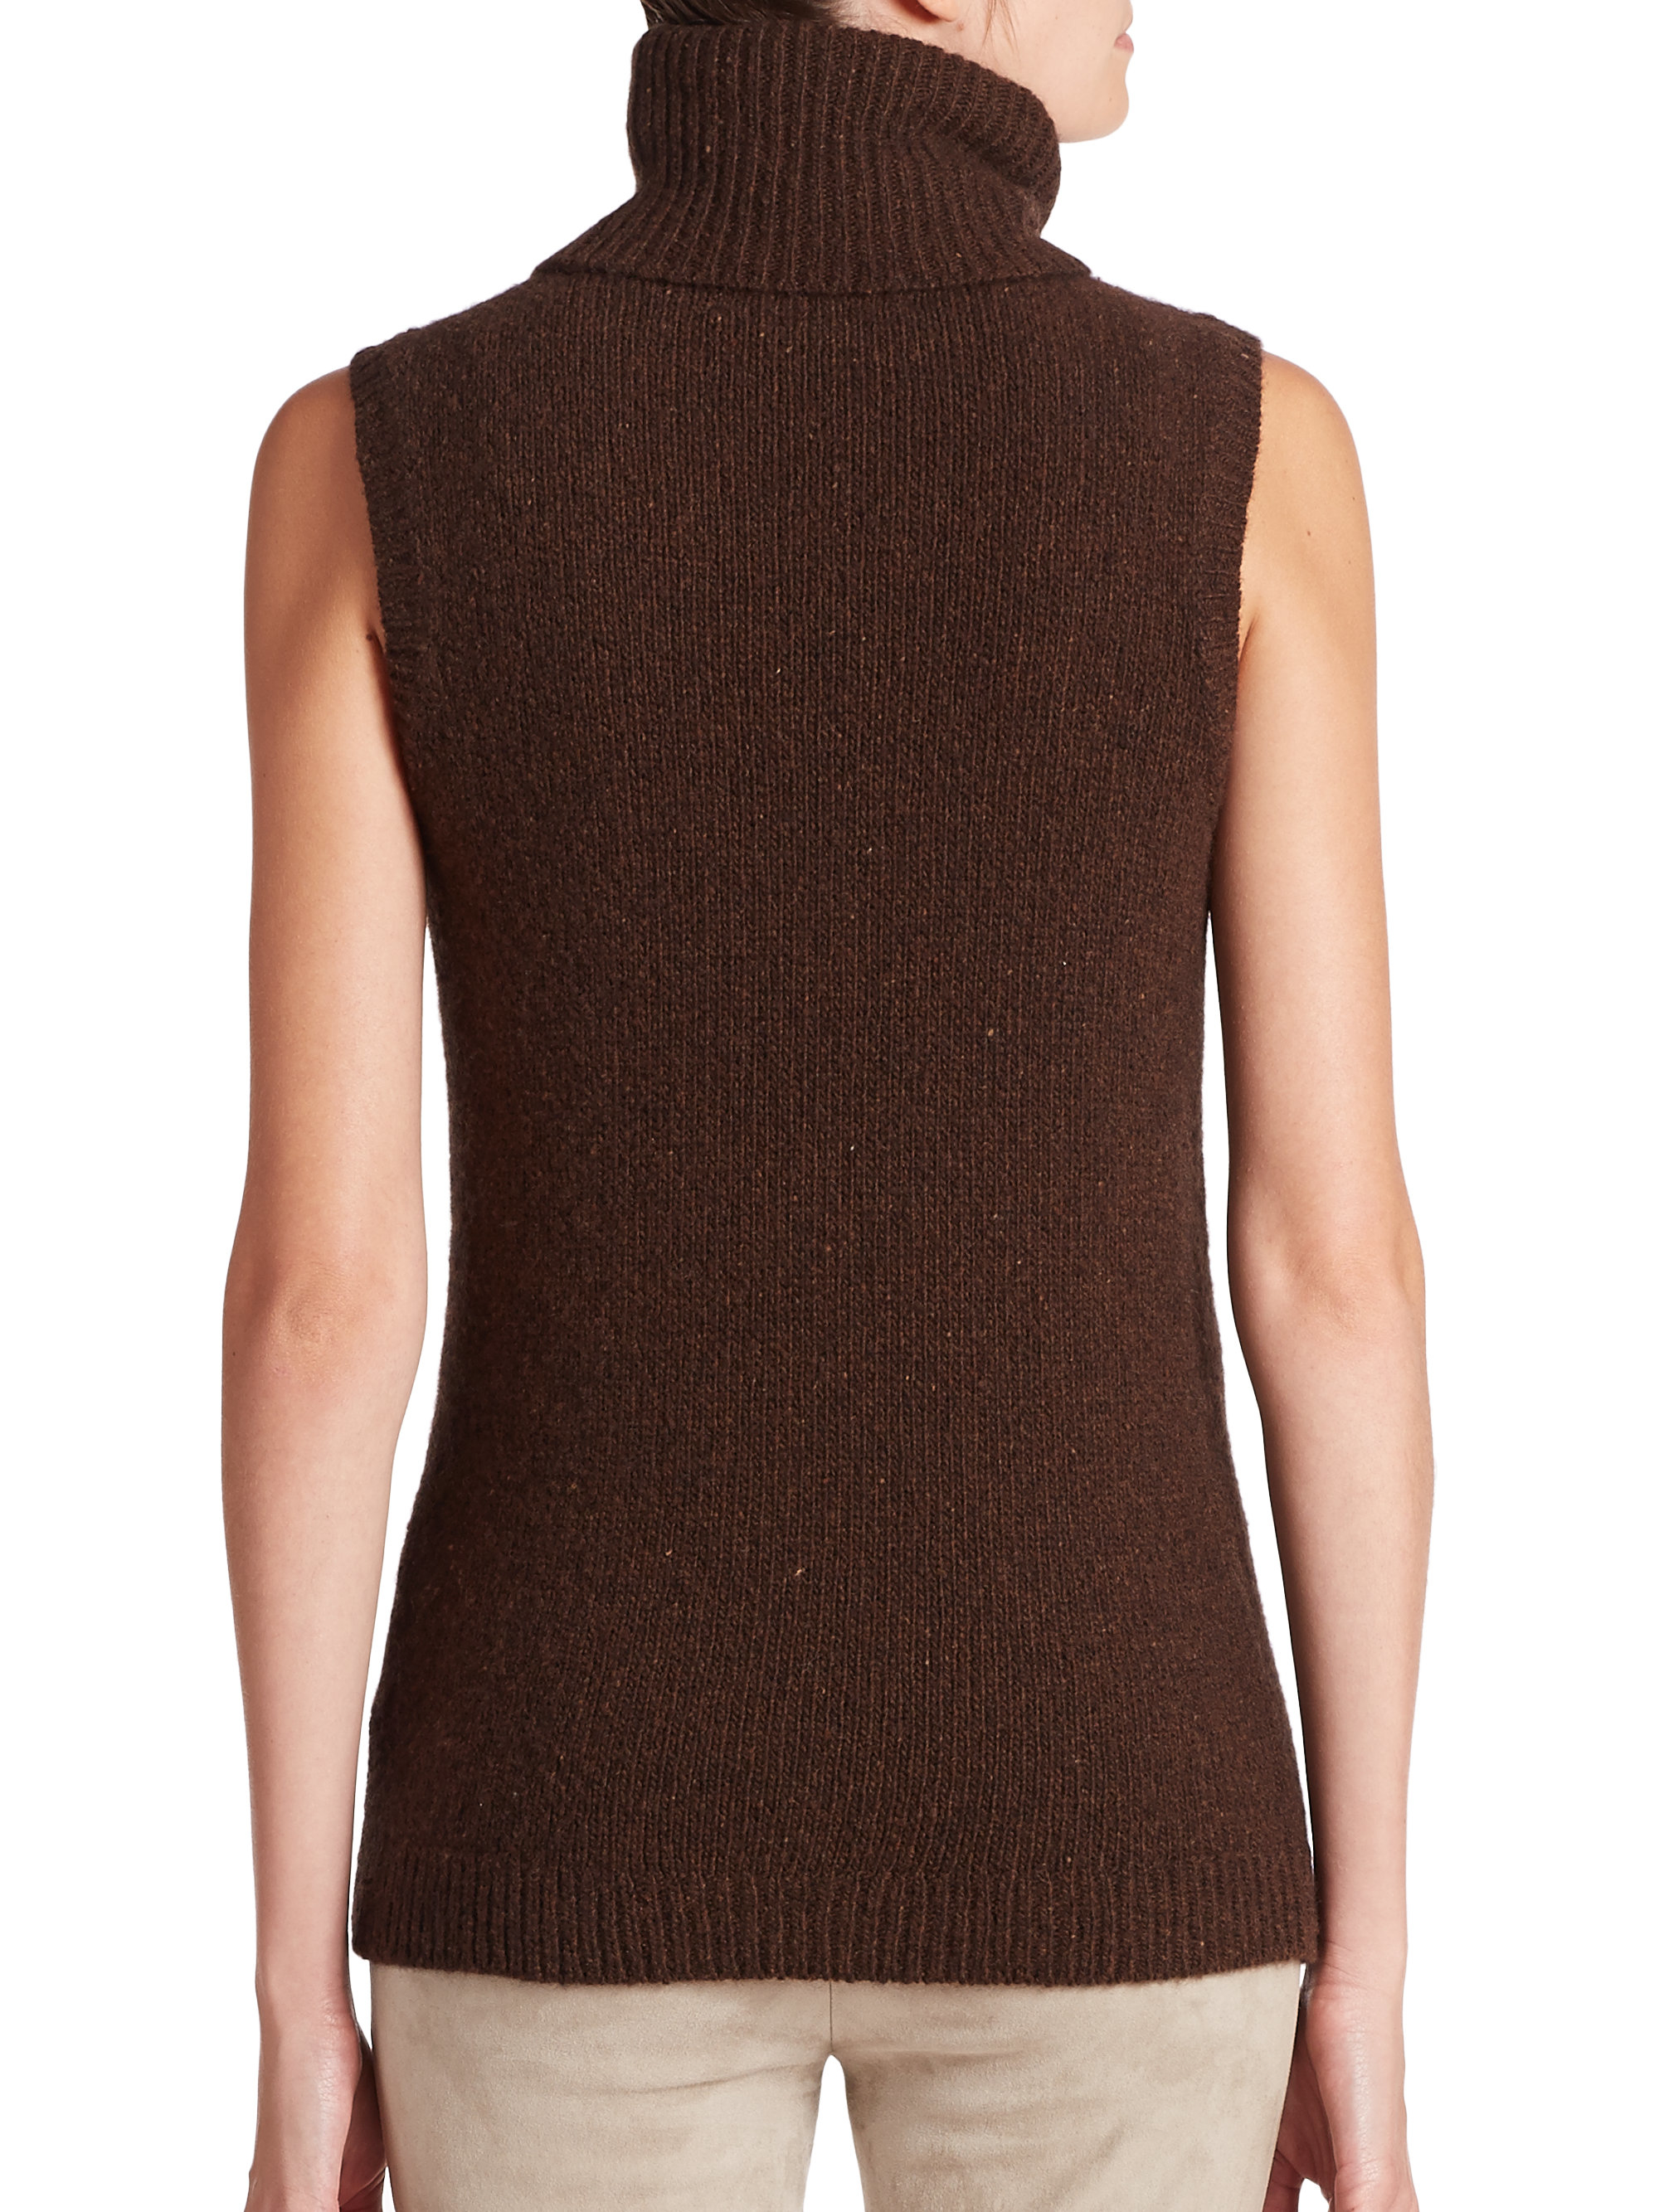 4be0af6e2effe Lyst - Ralph Lauren Black Label Donegal Cashmere Sleeveless ...